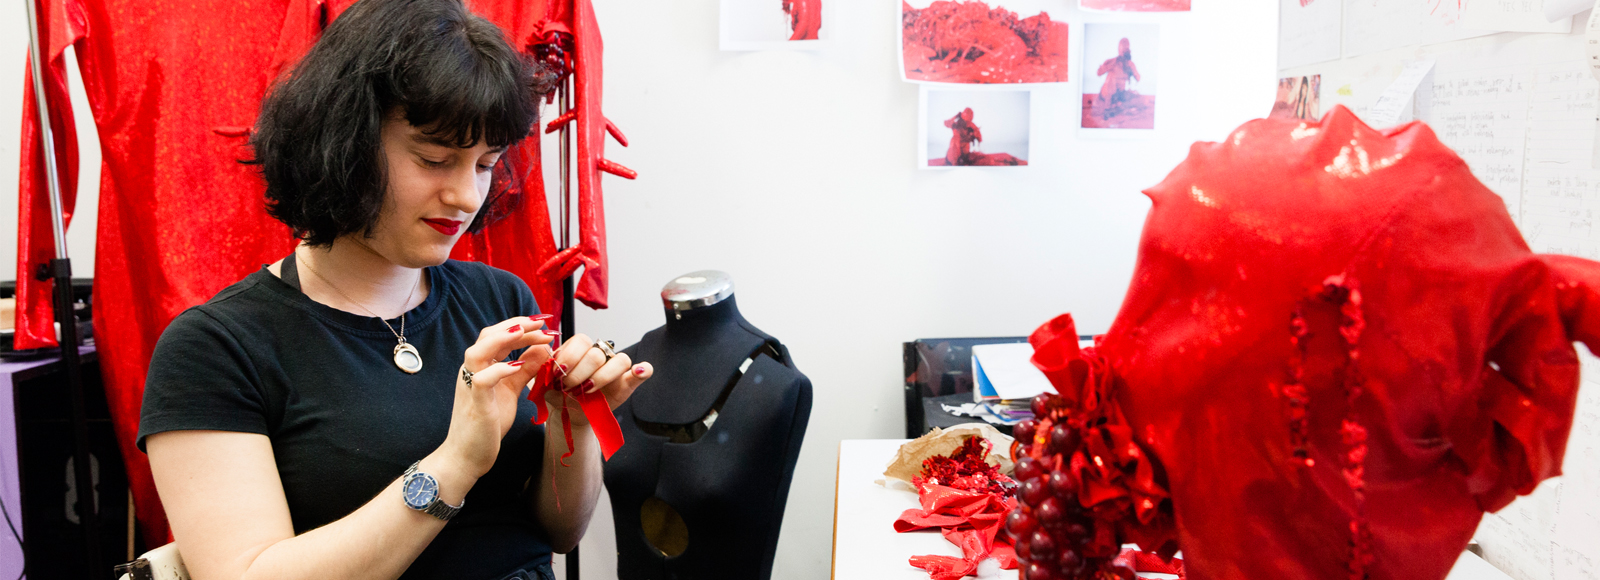 Dominique Cahill in her studio. Image by silversalt